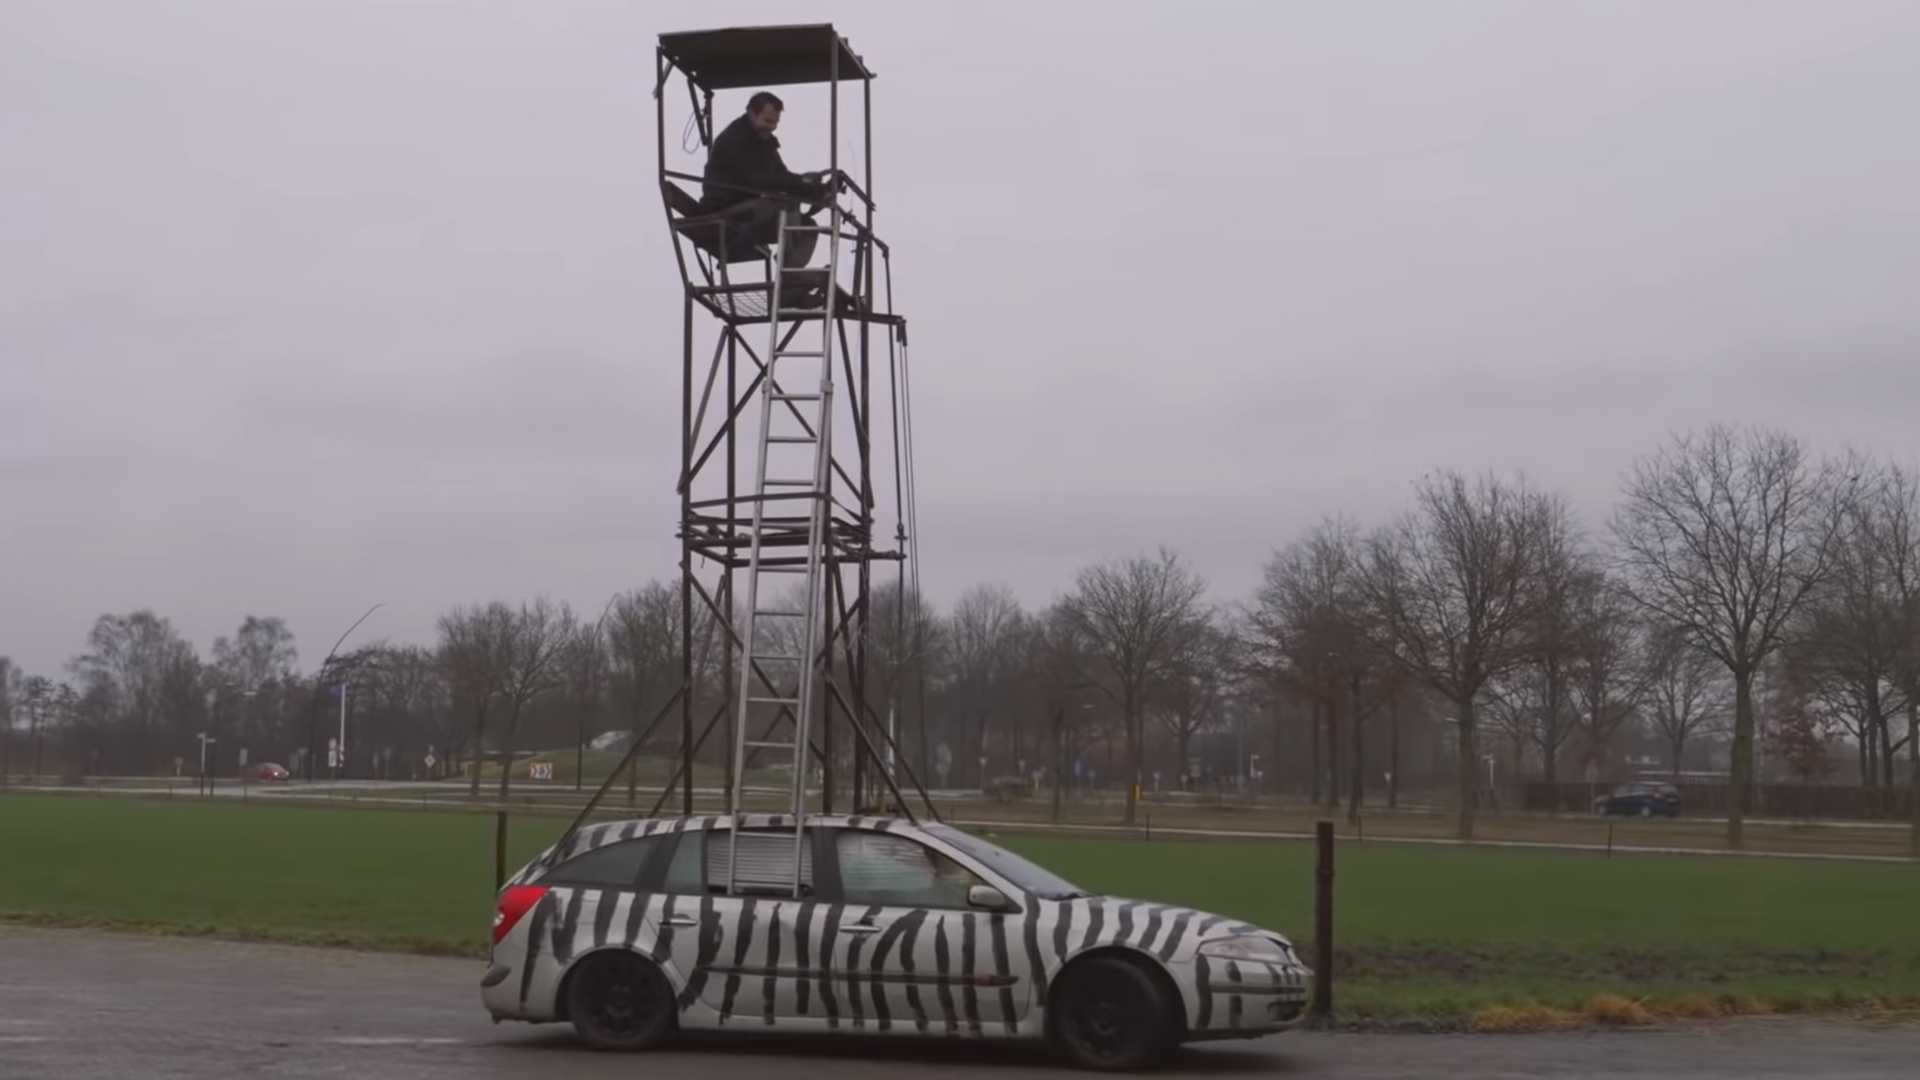 Old Renault Laguna Wagon Claims To Be The World's Tallest Car